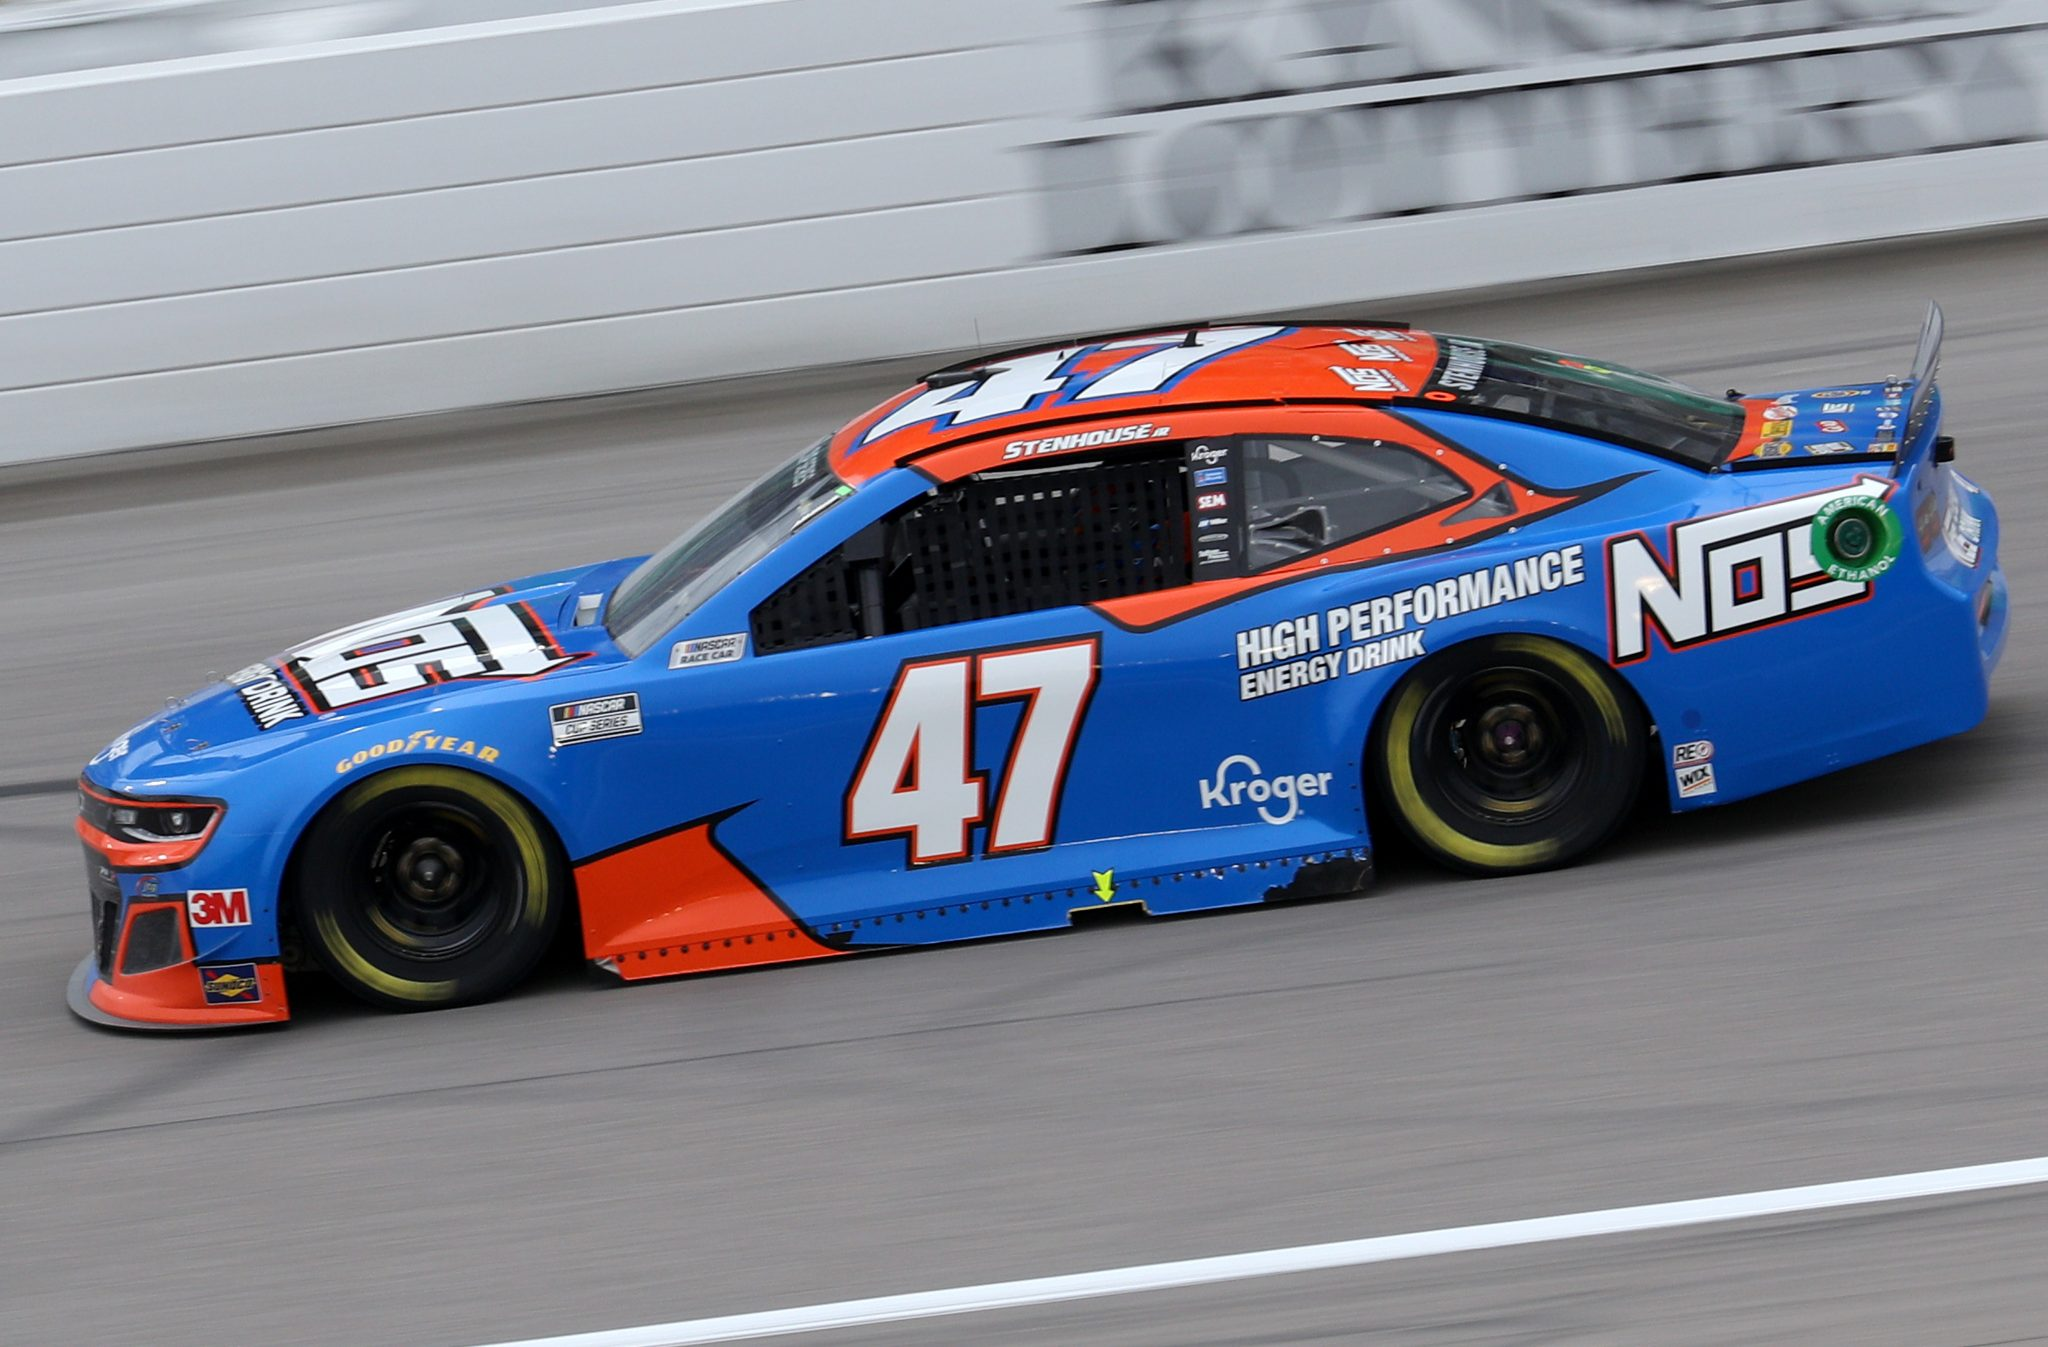 KANSAS CITY, KANSAS - OCTOBER 18: Ricky Stenhouse Jr., driver of the #47 NOS Energy Drink Chevrolet, drives during the NASCAR Cup Series Hollywood Casino 400 at Kansas Speedway on October 18, 2020 in Kansas City, Kansas. (Photo by Chris Graythen/Getty Images) | Getty Images